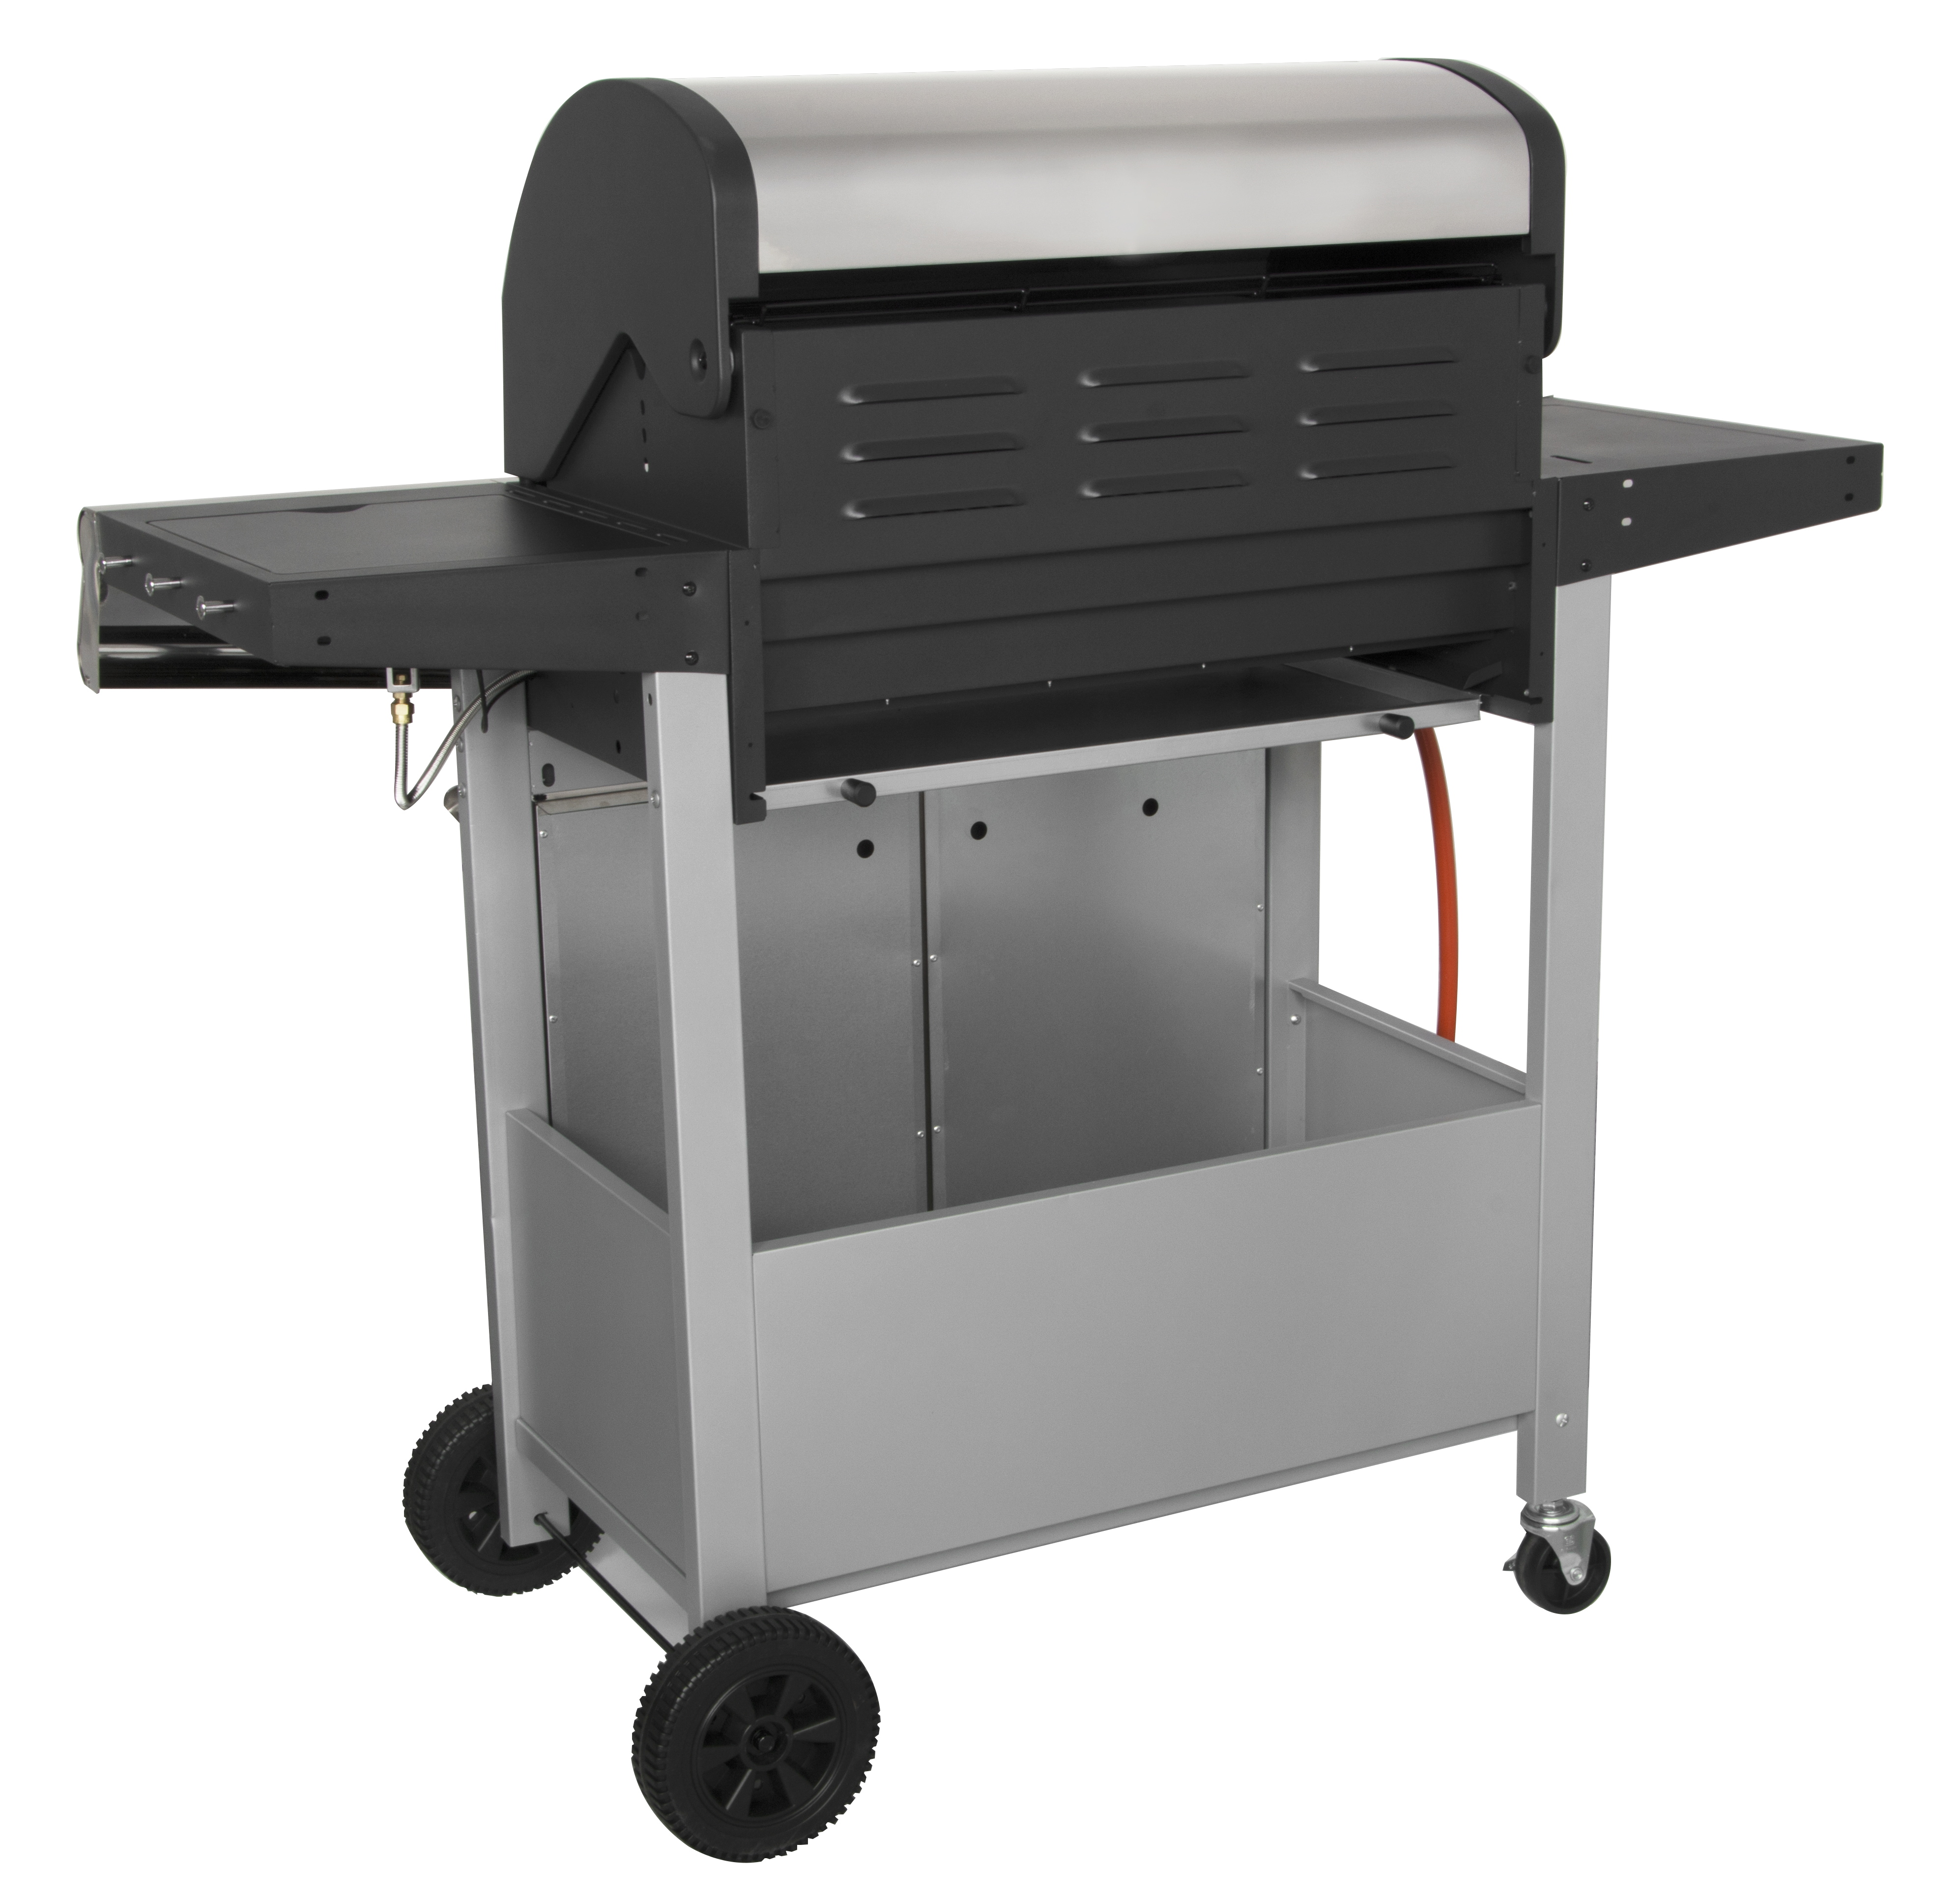 4 Burners Gas Barbecue